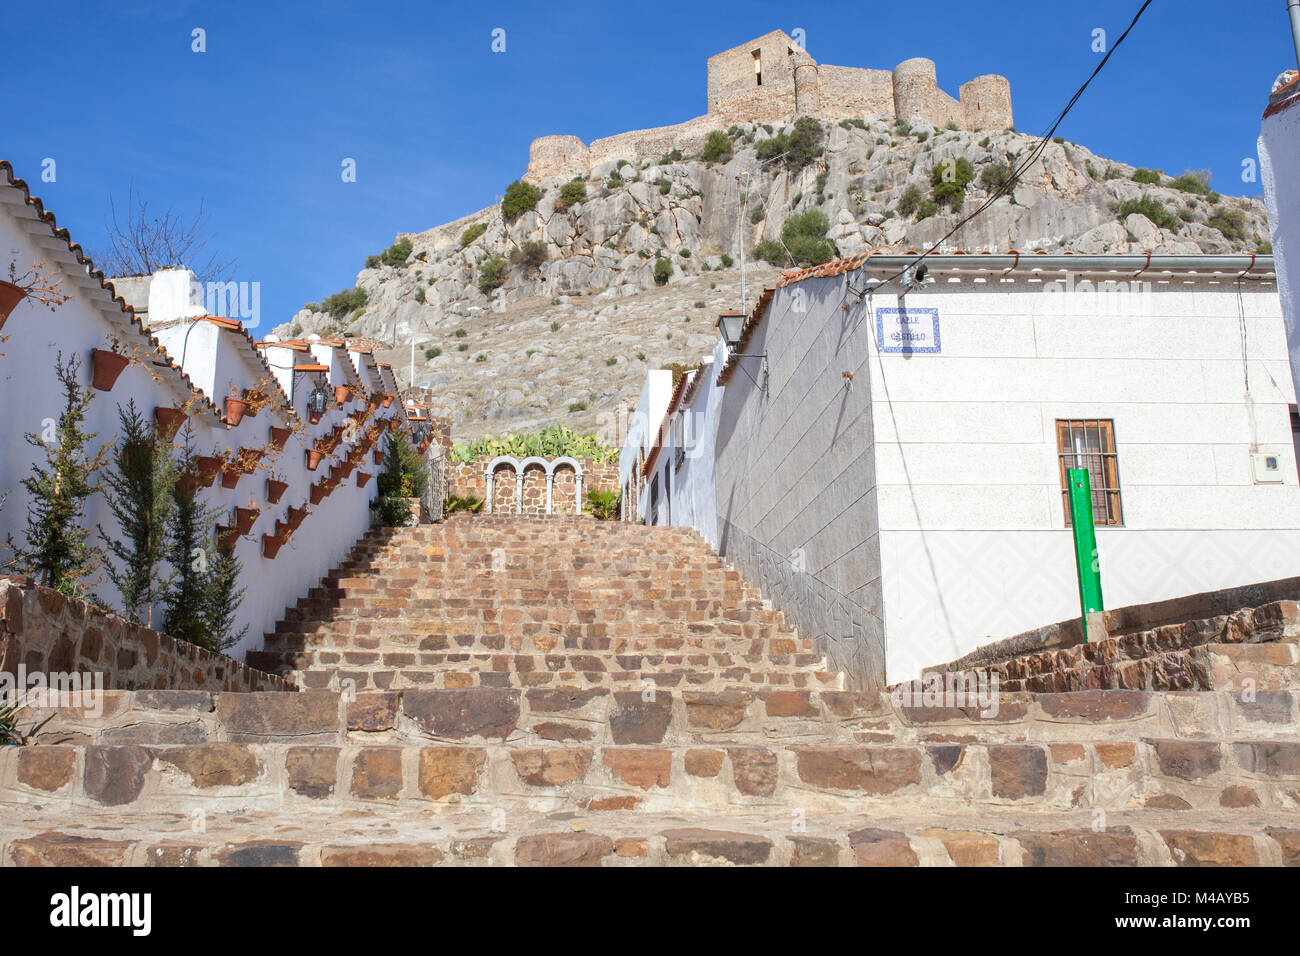 High rocky hill with Castle of Belmez, Cordoba, Spain. View from town streets. Rafael Canalejo staircase - Stock Image